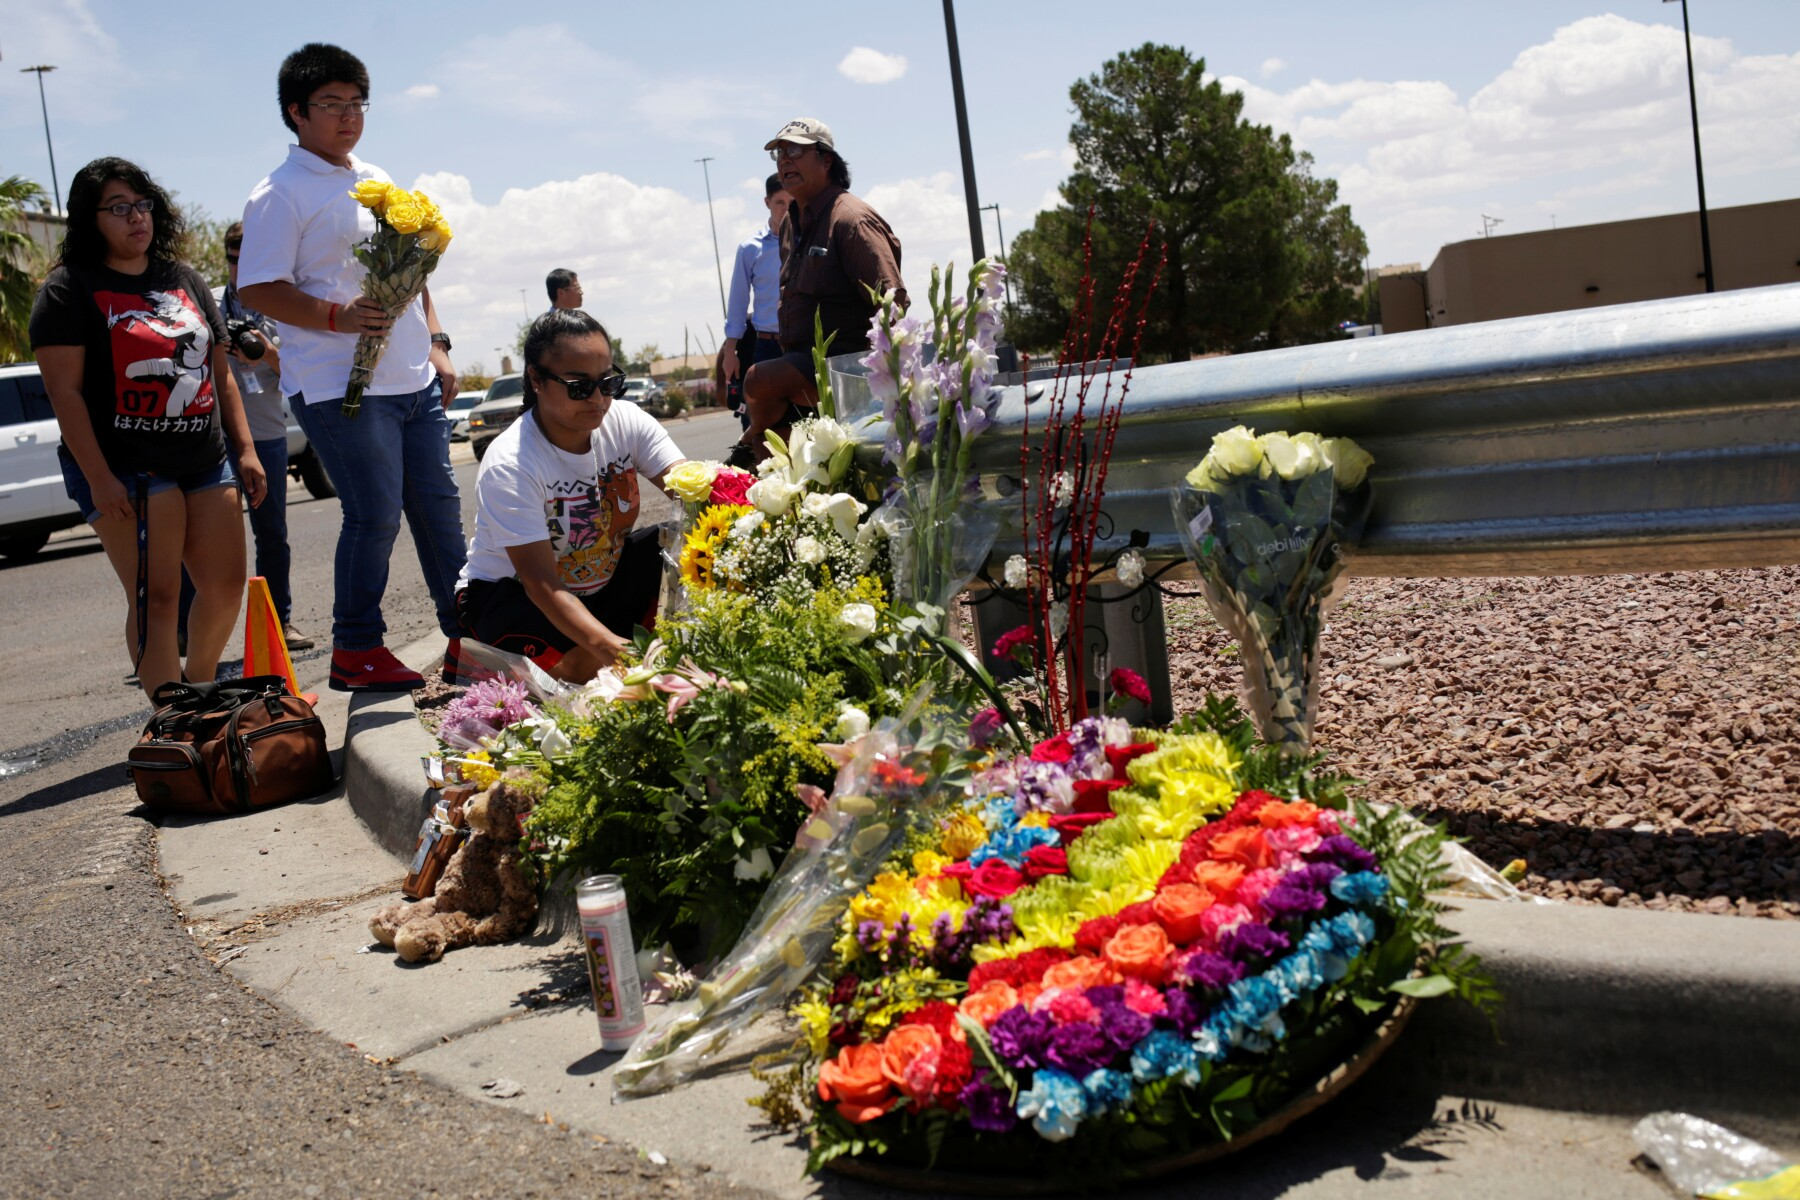 People place flowers at the site of a mass shooting where 20 people lost their lives at a Walmart in El Paso